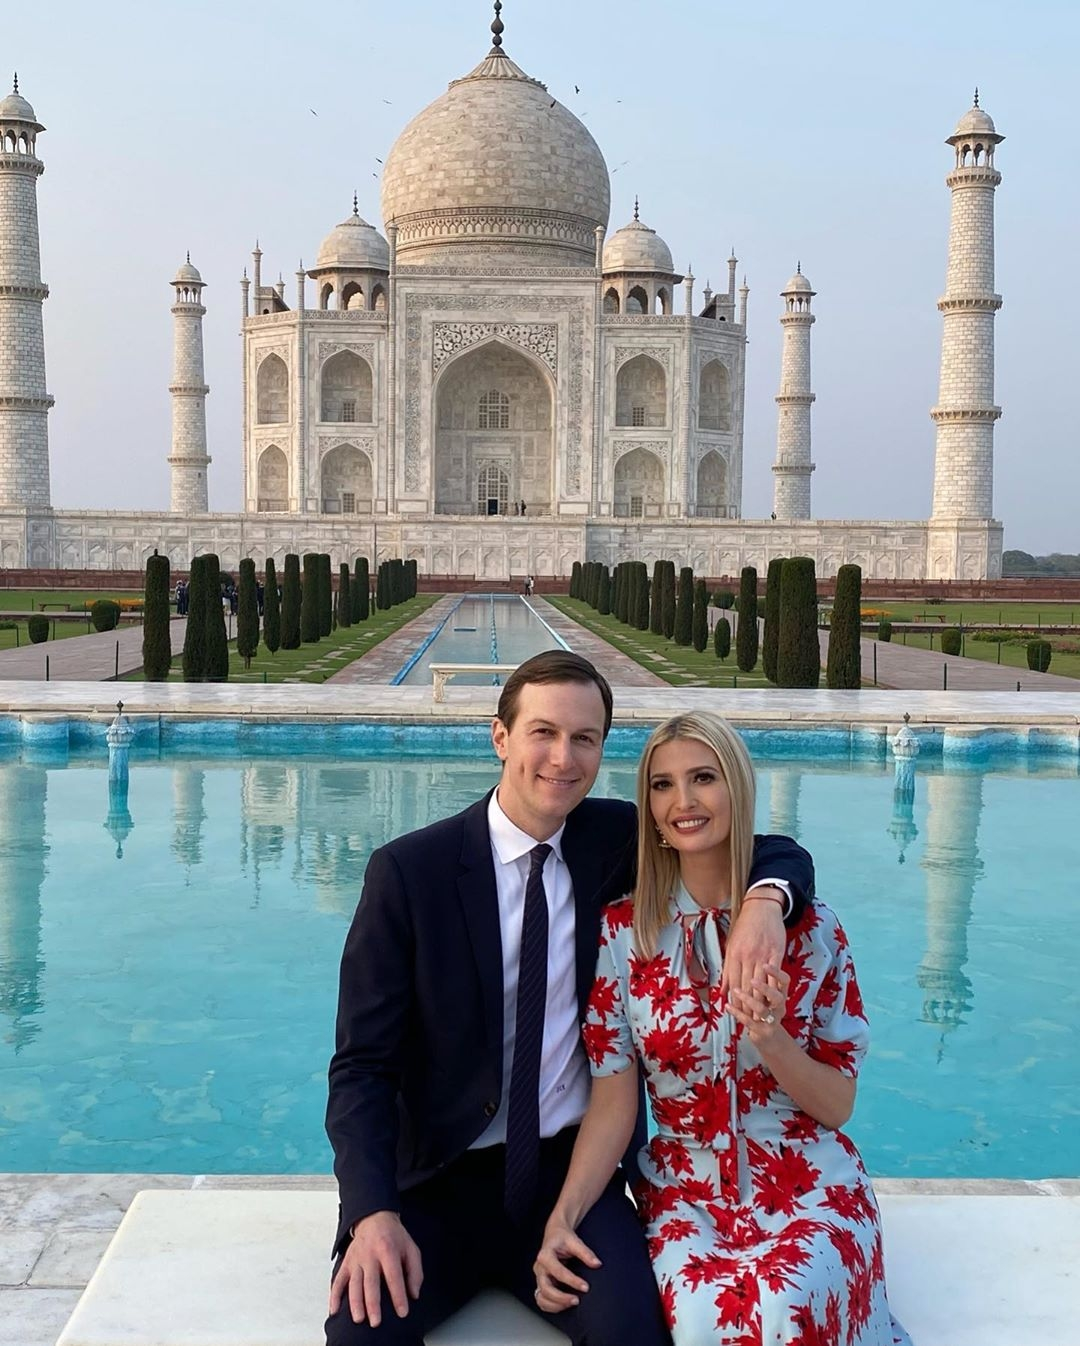 It was love in the air as Ivanka Trump, in a Proenza Schouler floral printed dress, took a stroll at the Taj Mahal with her husband Jared Kushner on Monday.